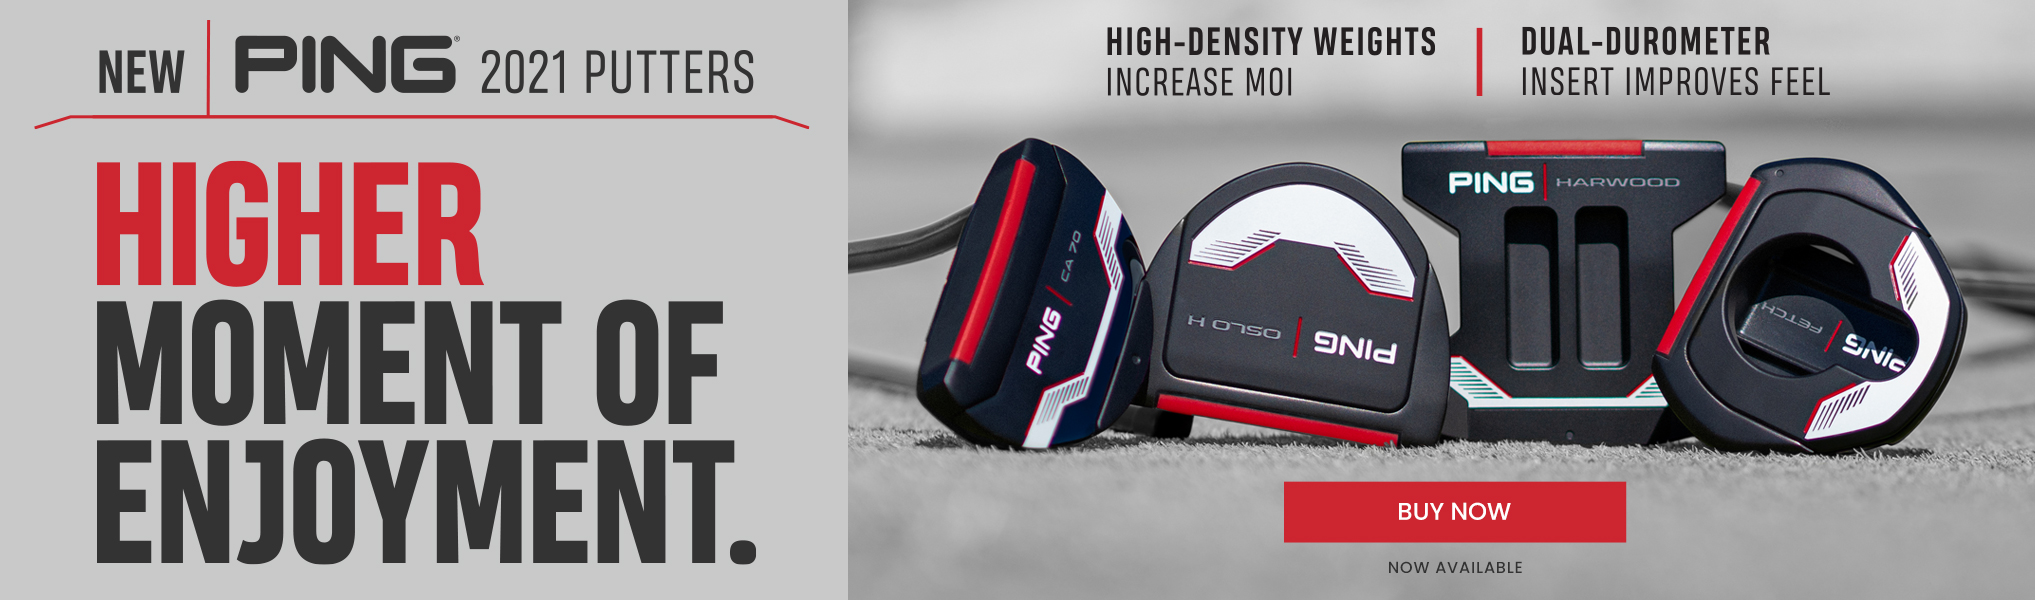 New PING putters for 2021. Higher moment of enjoyment. Click to pre order now.